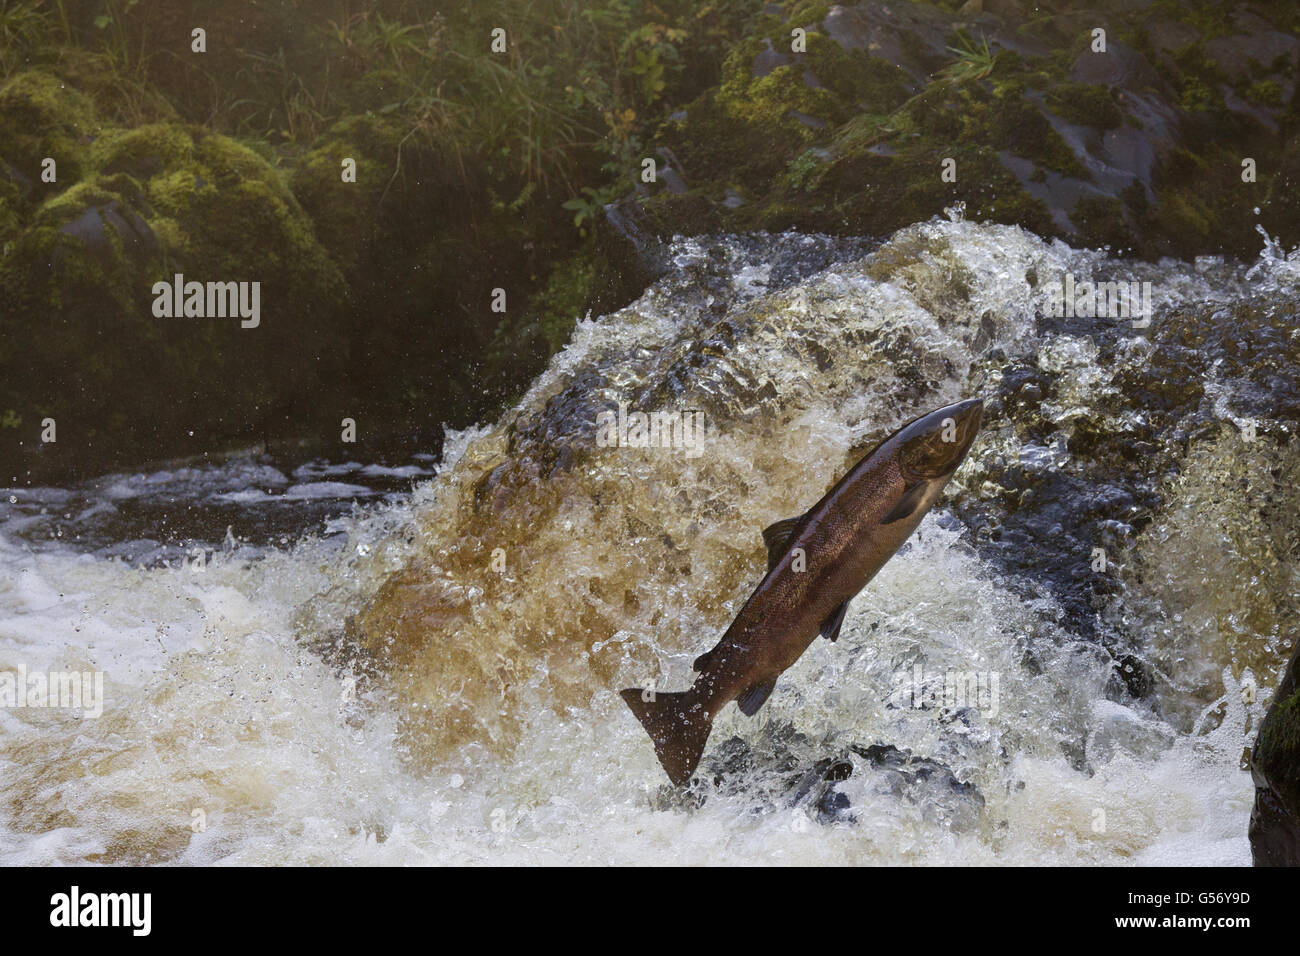 Atlantic Salmon (Salmo salar) adult, leaping up waterfall, moving upstream to spawning ground, River Whiteadder, Stock Photo